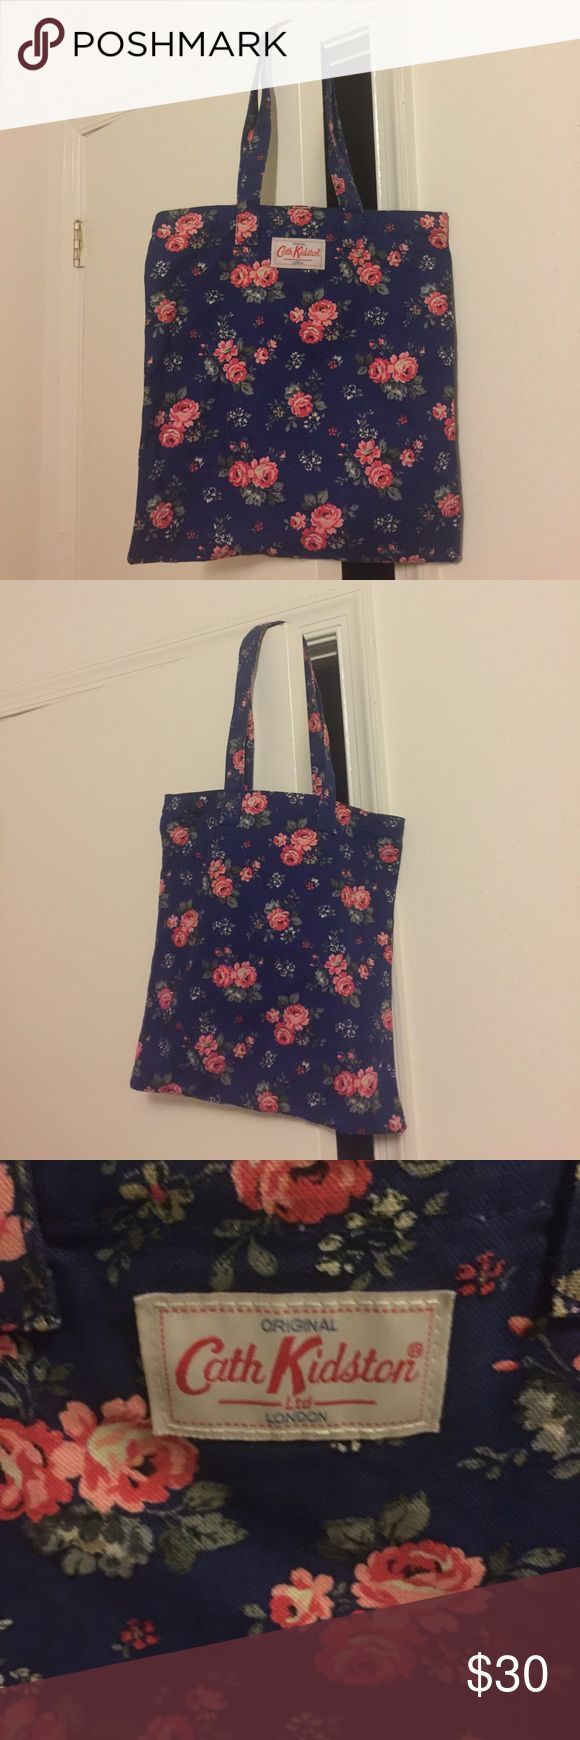 """NWT Cath Kidston Floral Tote • Never worn • 13.75"""" W, 14.5 H • Straps 9"""" • Purchased at Cath Kidston retail store in England Cath Kidston Bags Totes"""